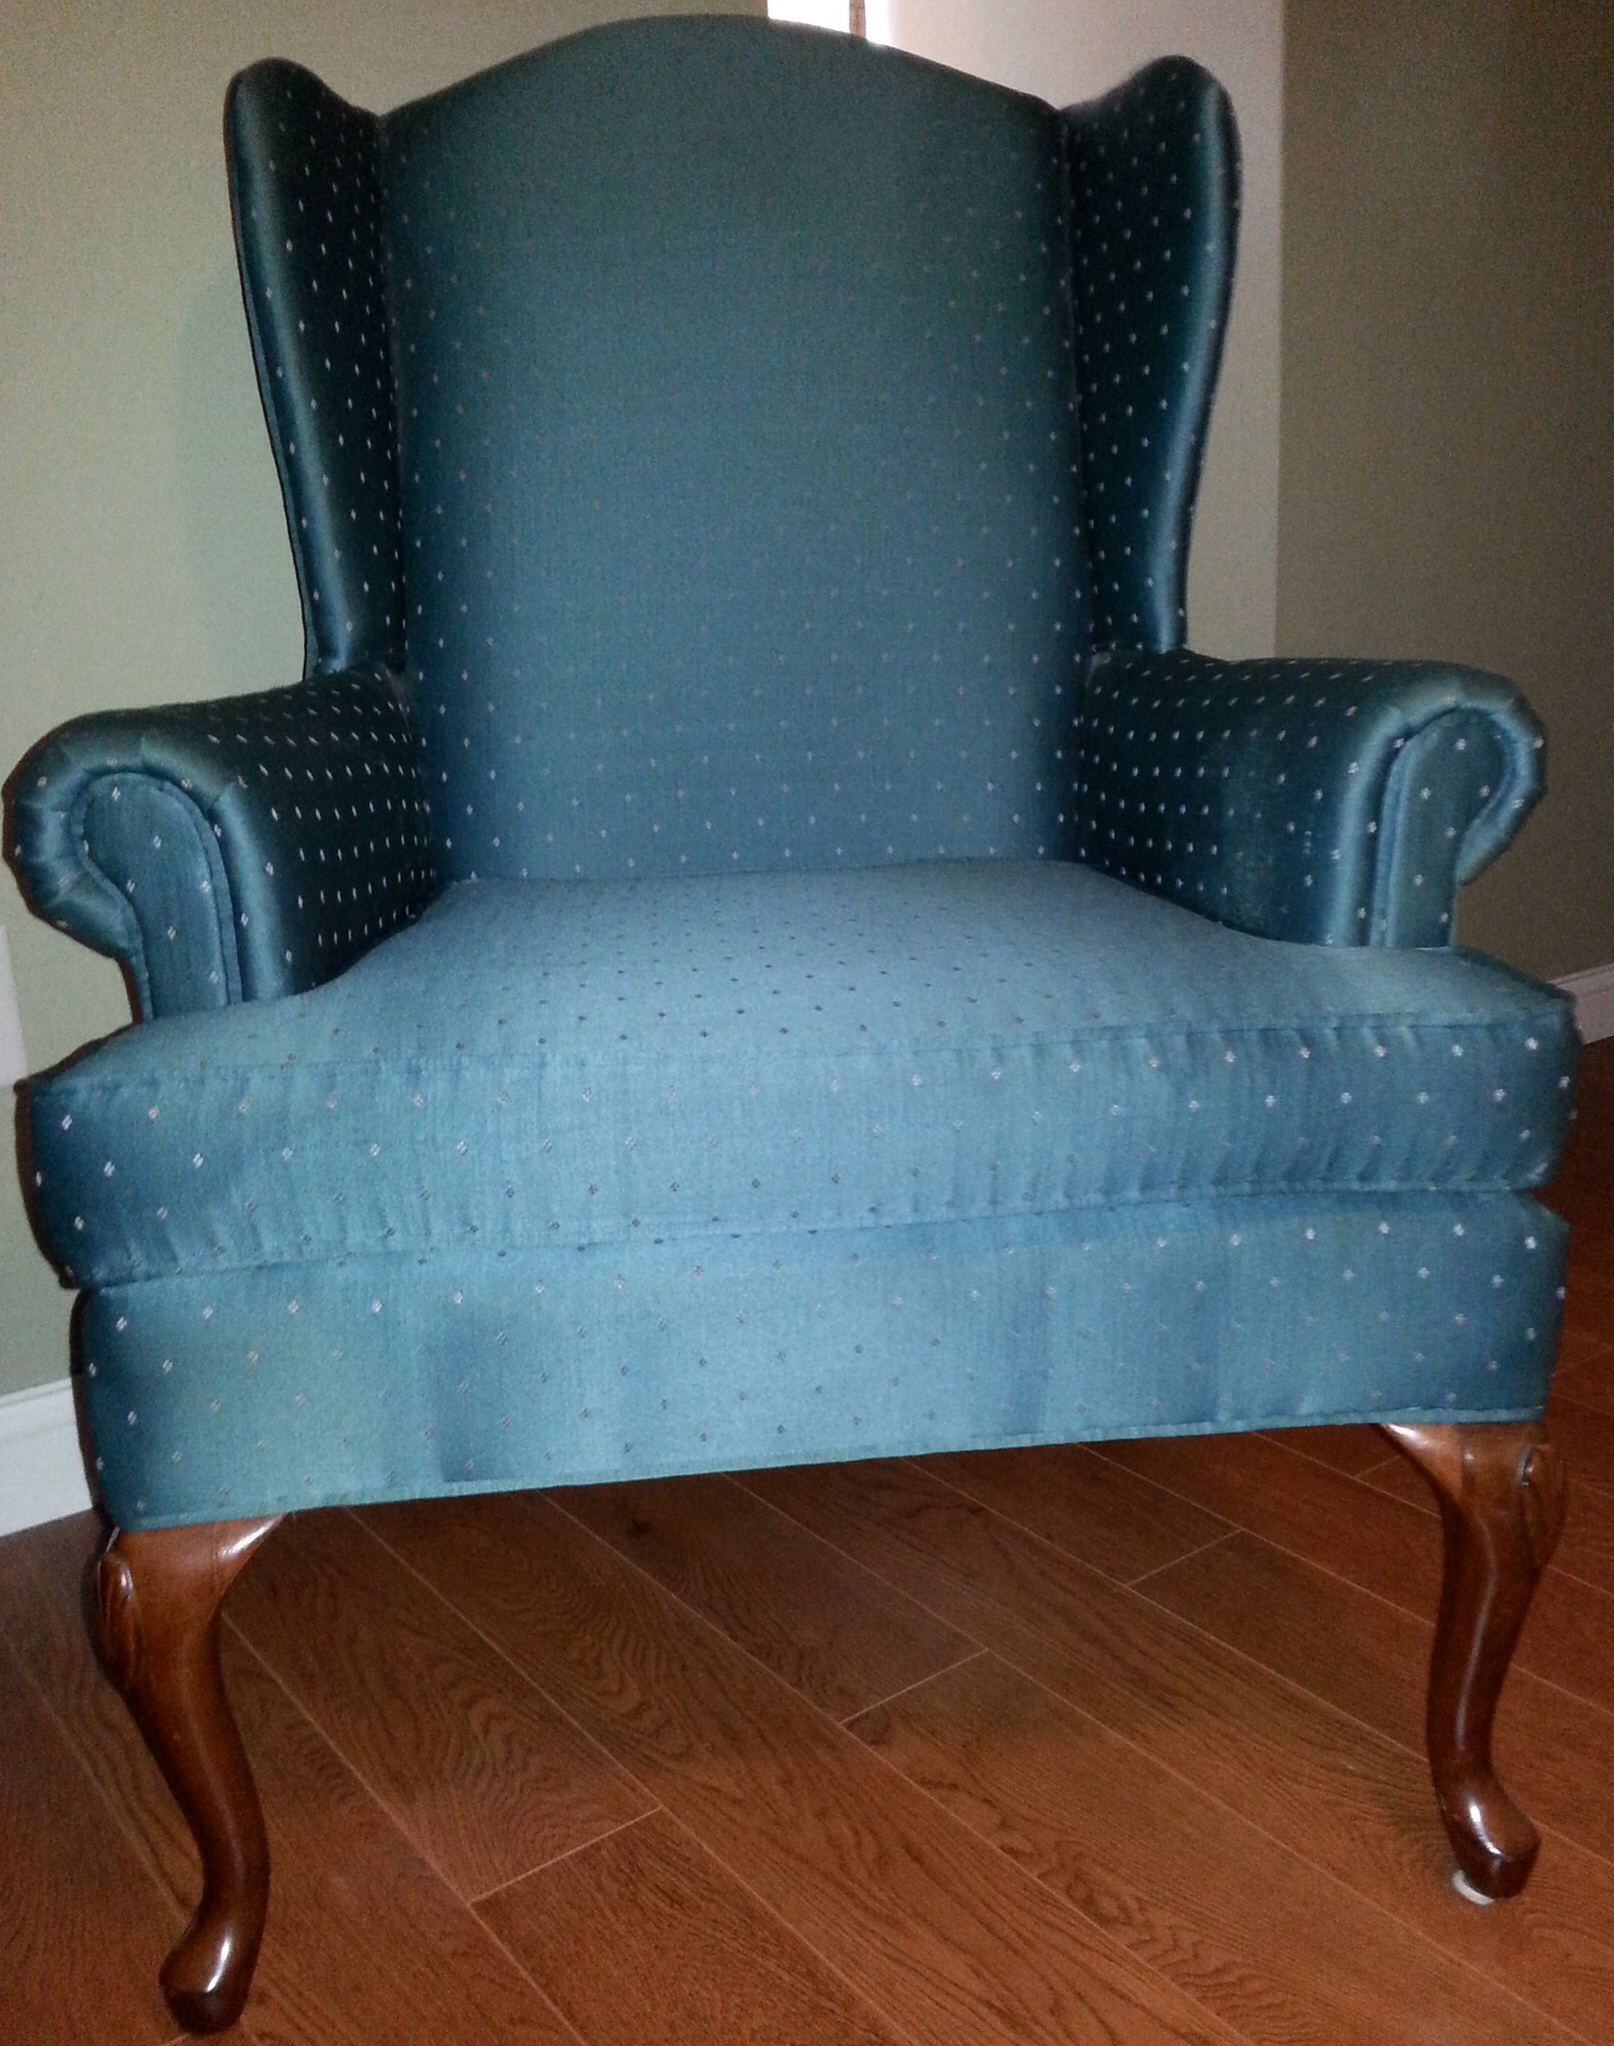 2 Fairfield Chair pany Wingback Chairs antique appraisal